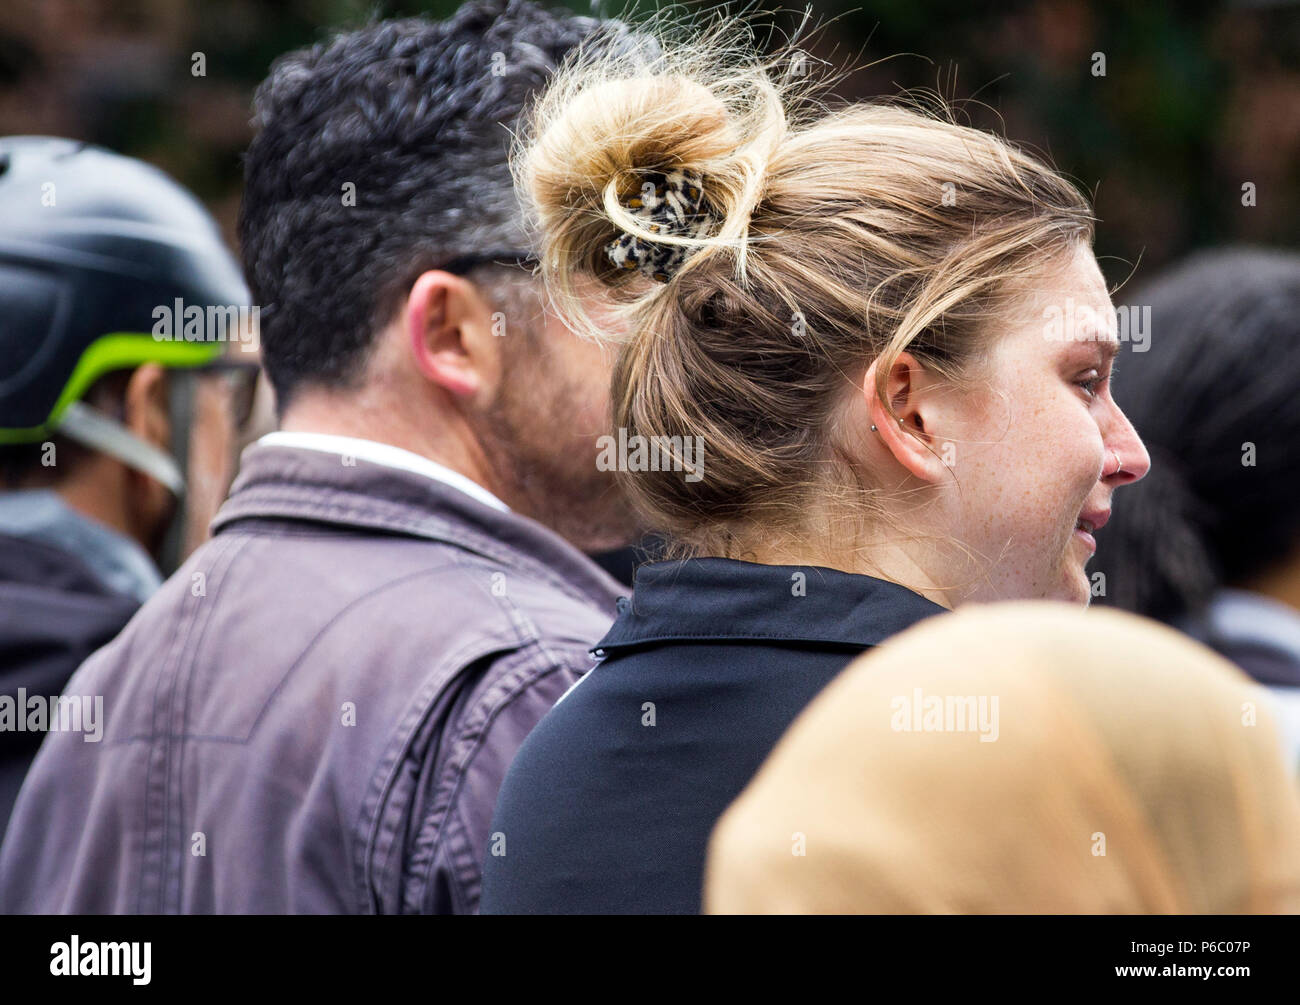 The first anniversary of the 24-storey Grenfell Tower block of public housing flats fire which claimed 72 lives. Young woman crying during the one year memorial service for the victims of the Grenfell tower fire, South Kensington, London, UK, 14th June 2018. - Stock Image